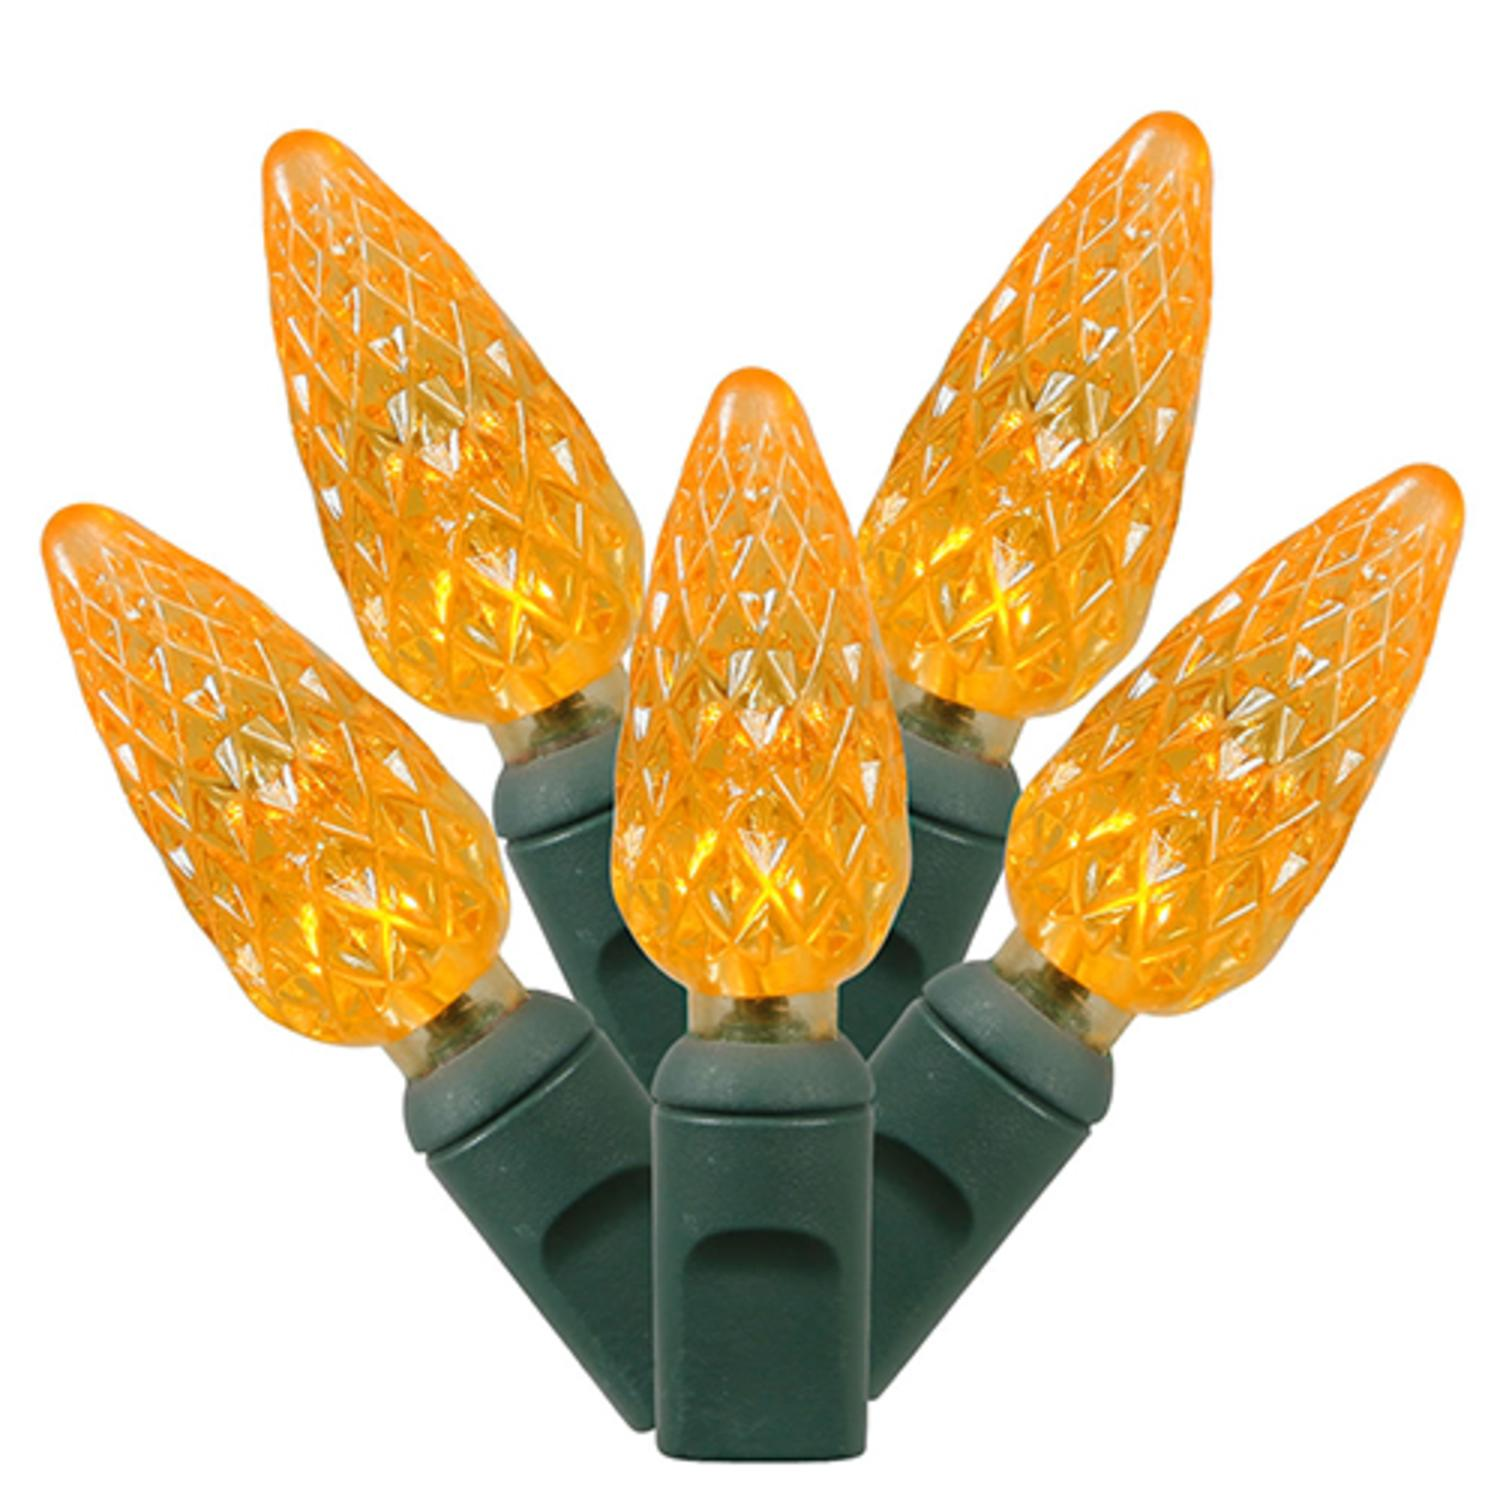 Set of 50 Amber Commercial Grade LED C6 Christmas Lights - Green Wire